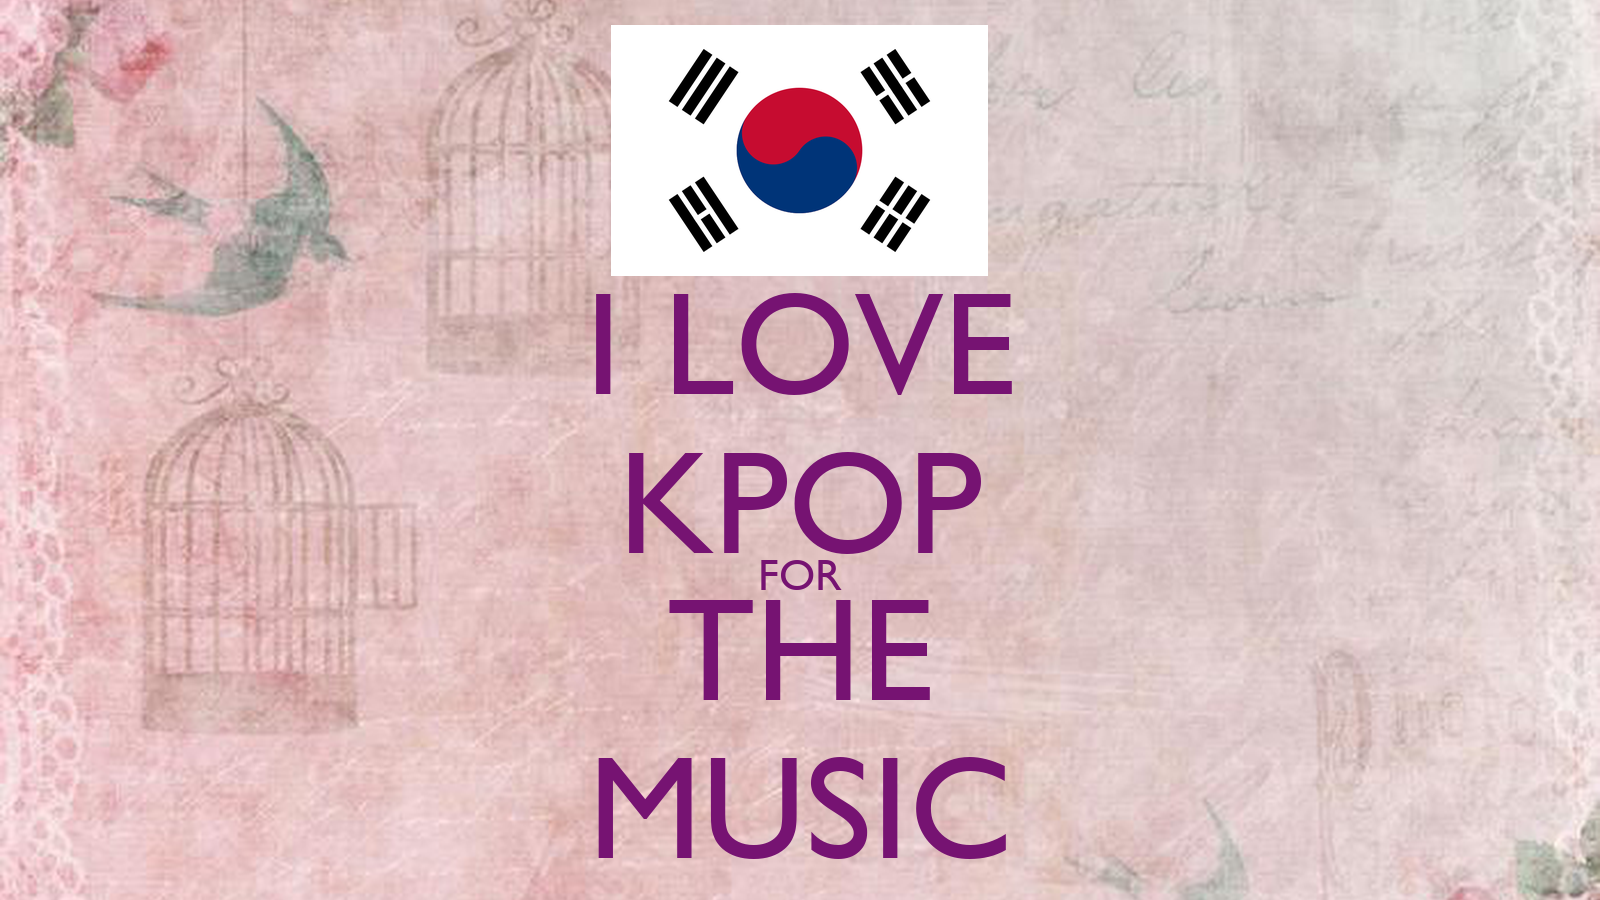 I LOVE KPOP FOR THE MUSIC Poster